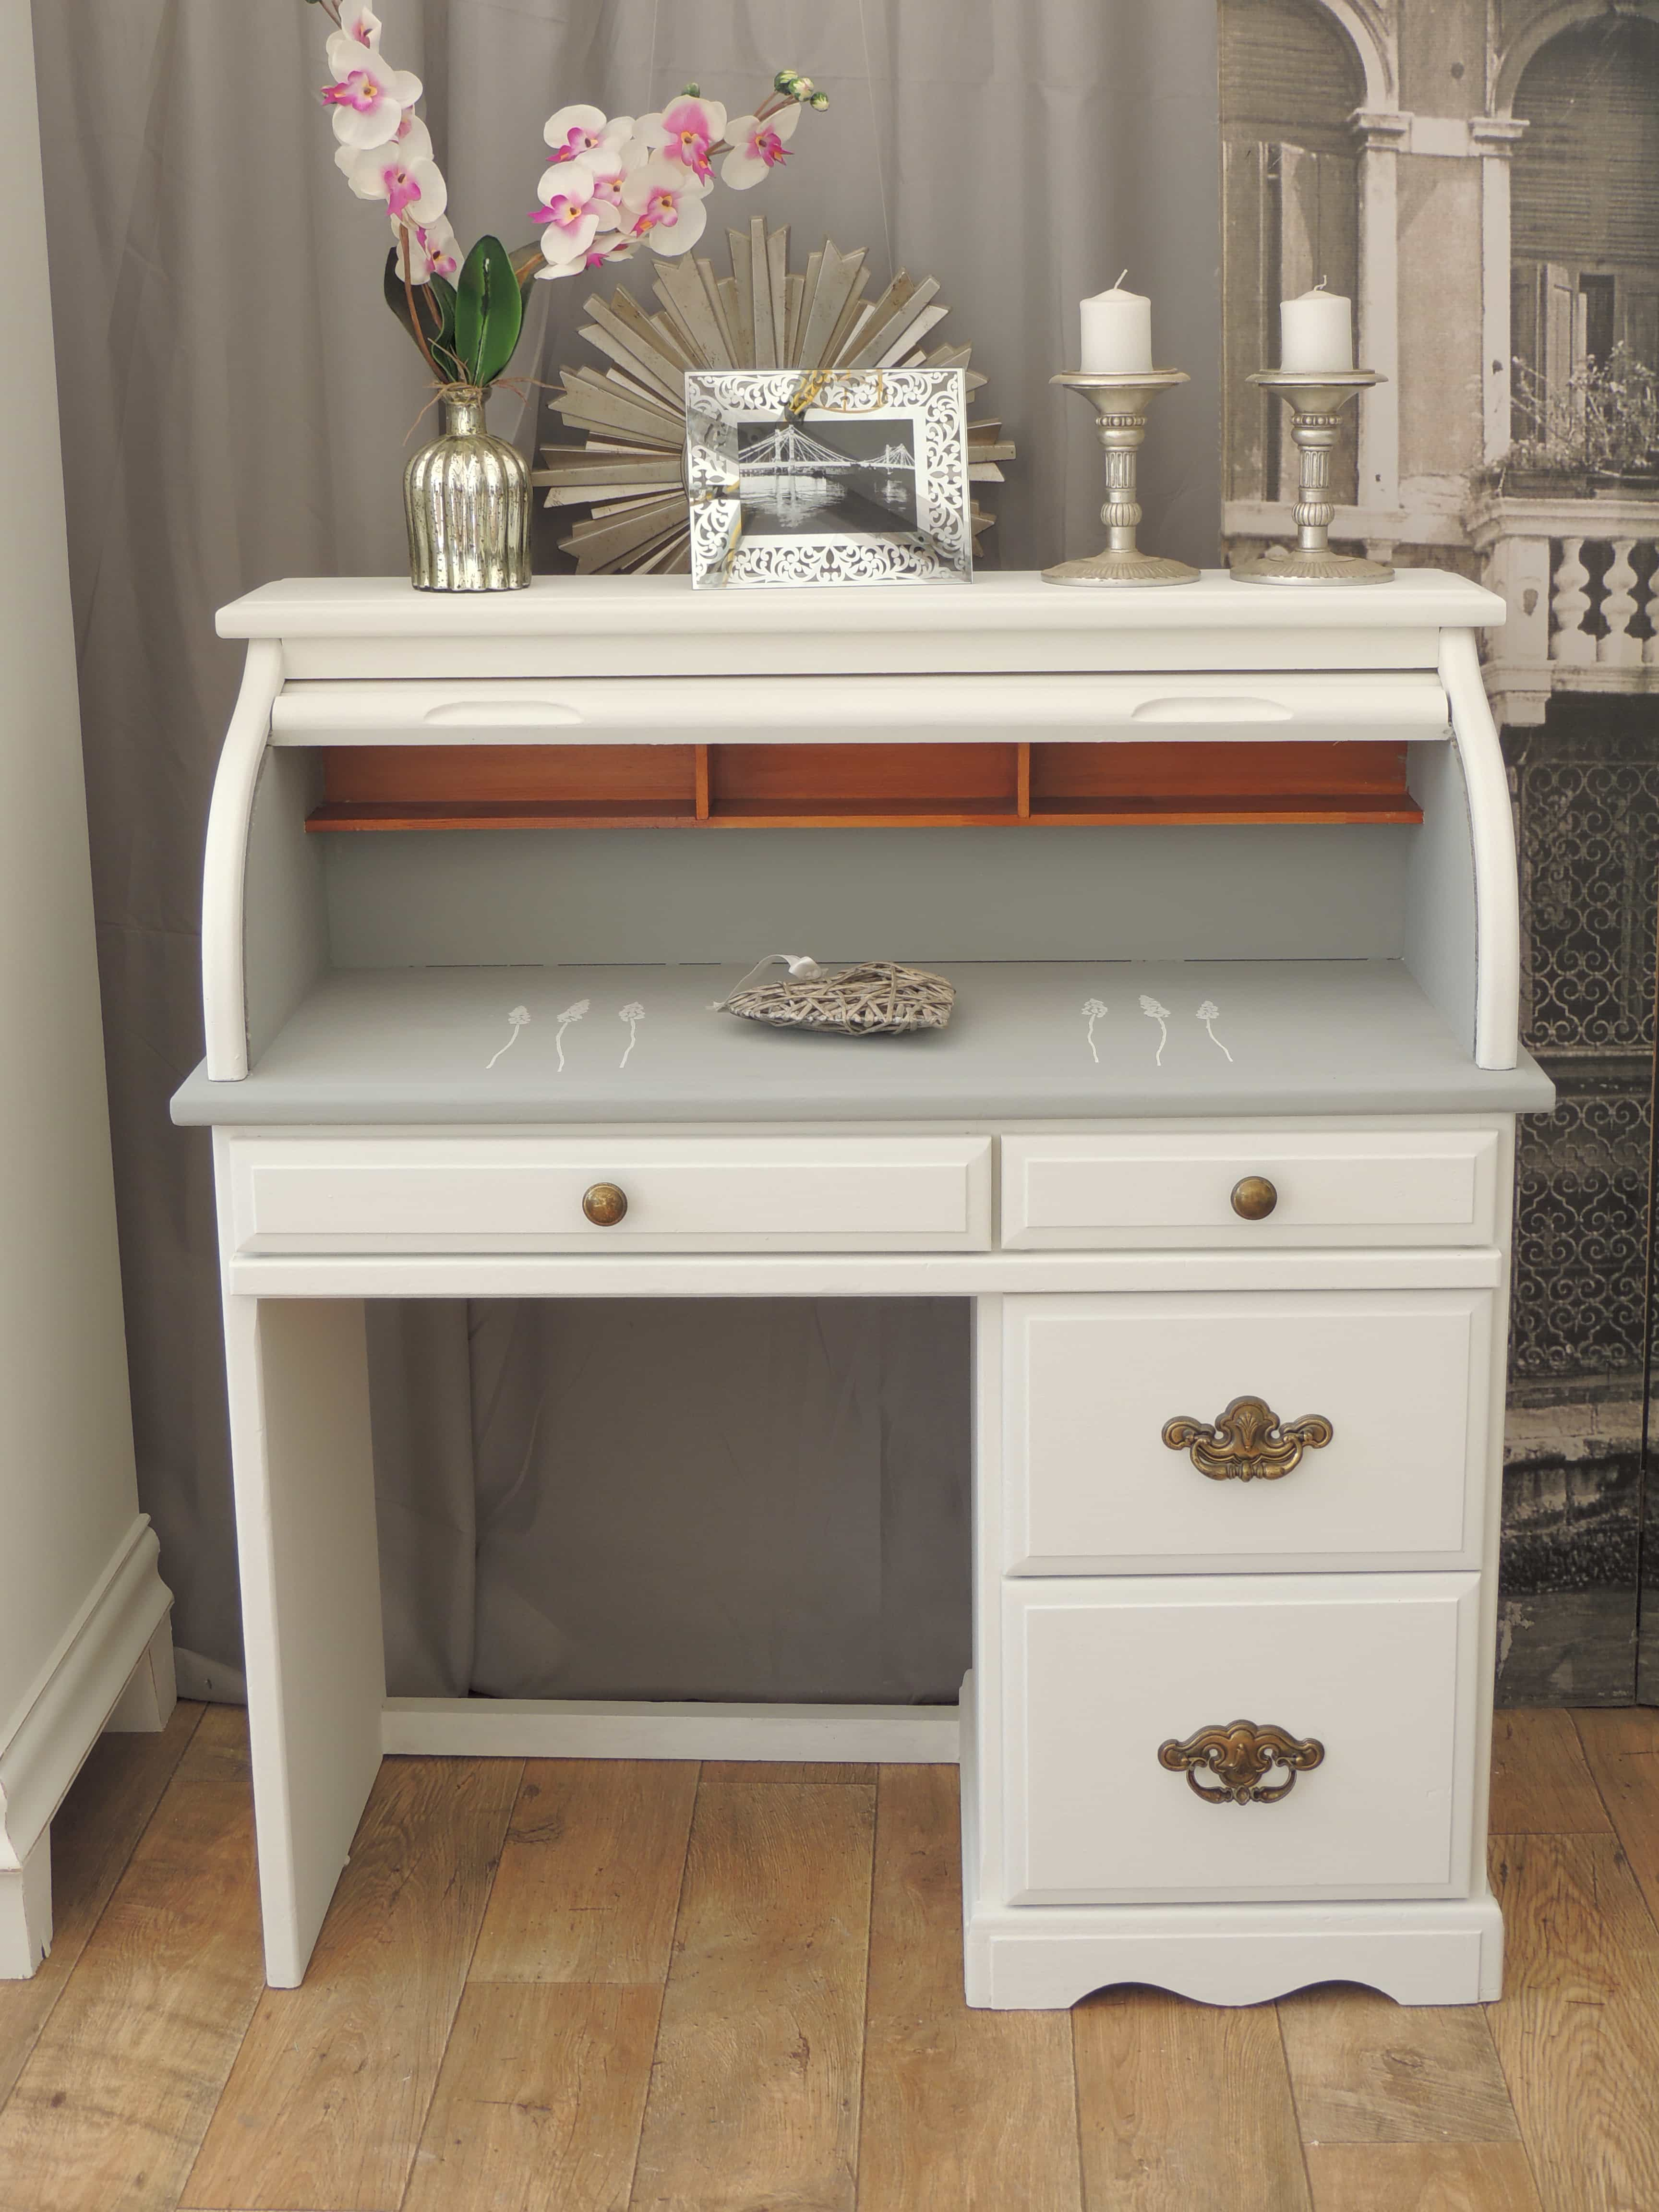 Shabby Chic Roll Top Desk